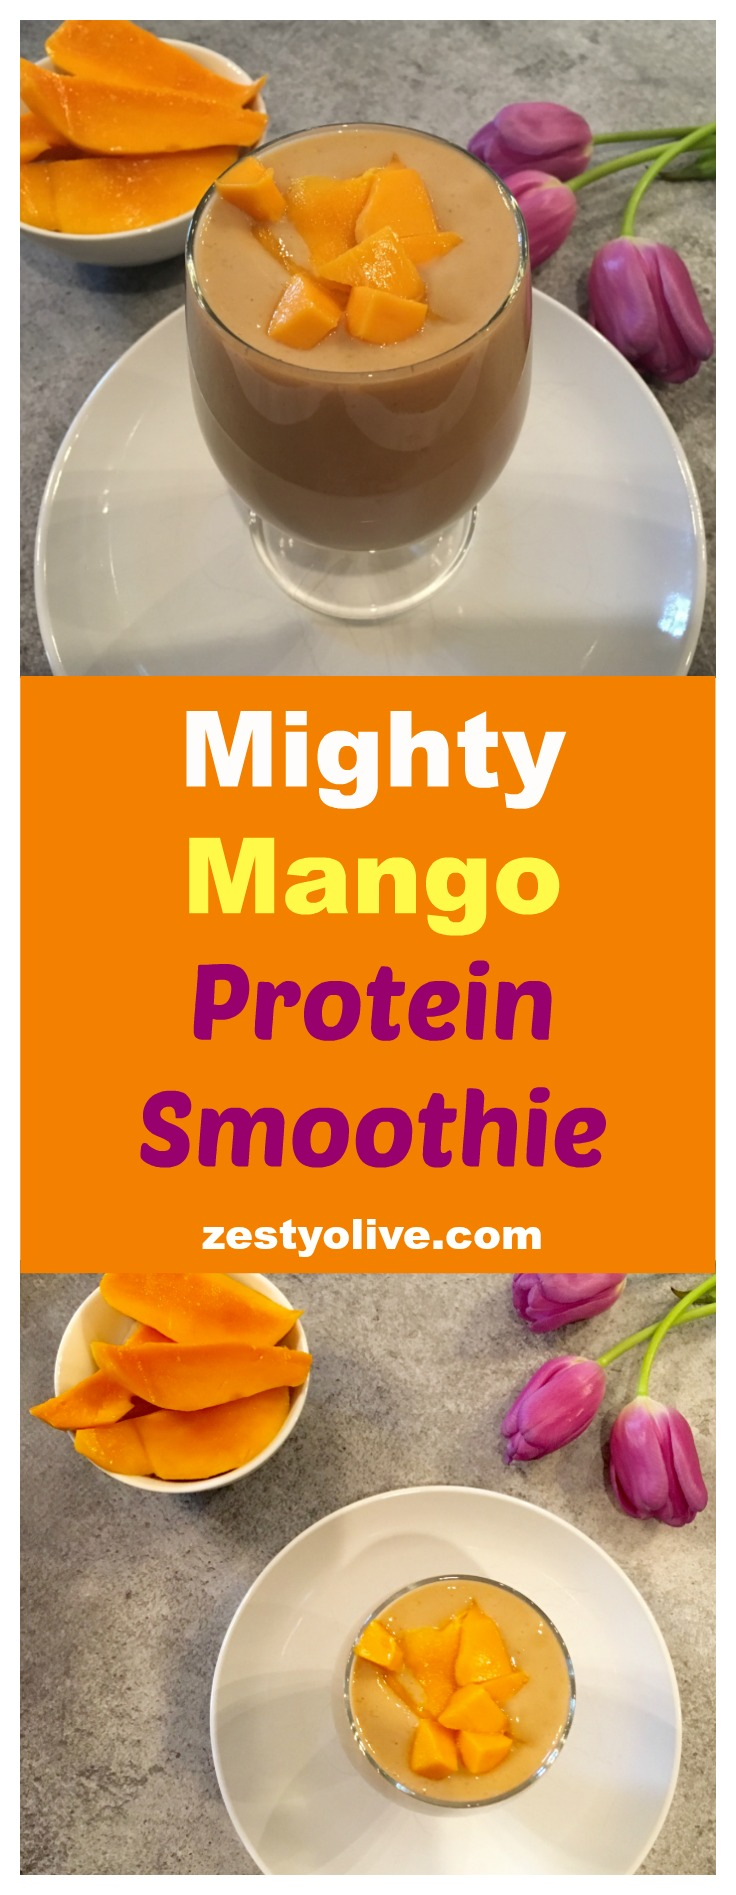 Mighty Mango Protein Smoothie